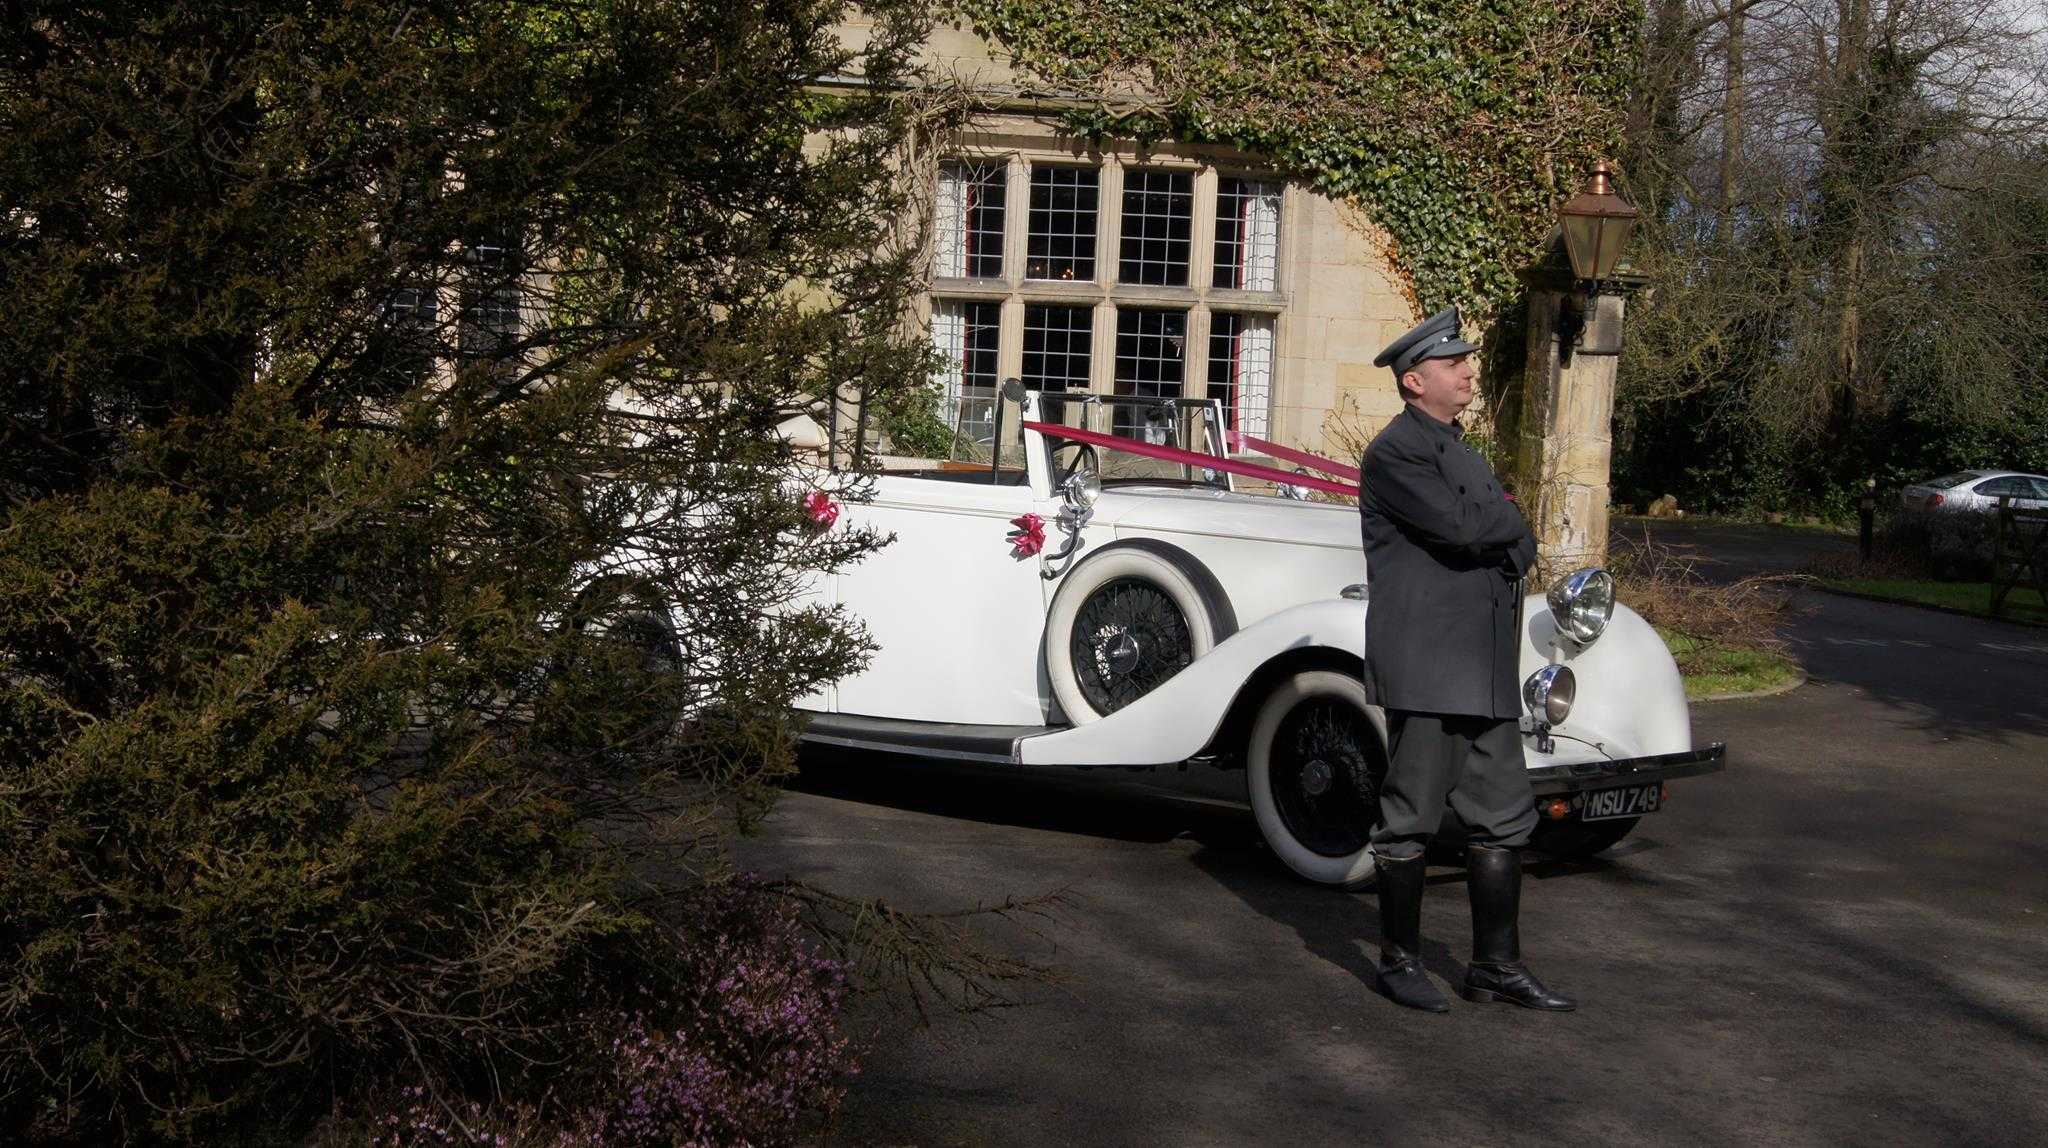 Chauffeur Driven Wedding Cars and Bridal Car Hire - oukas.info